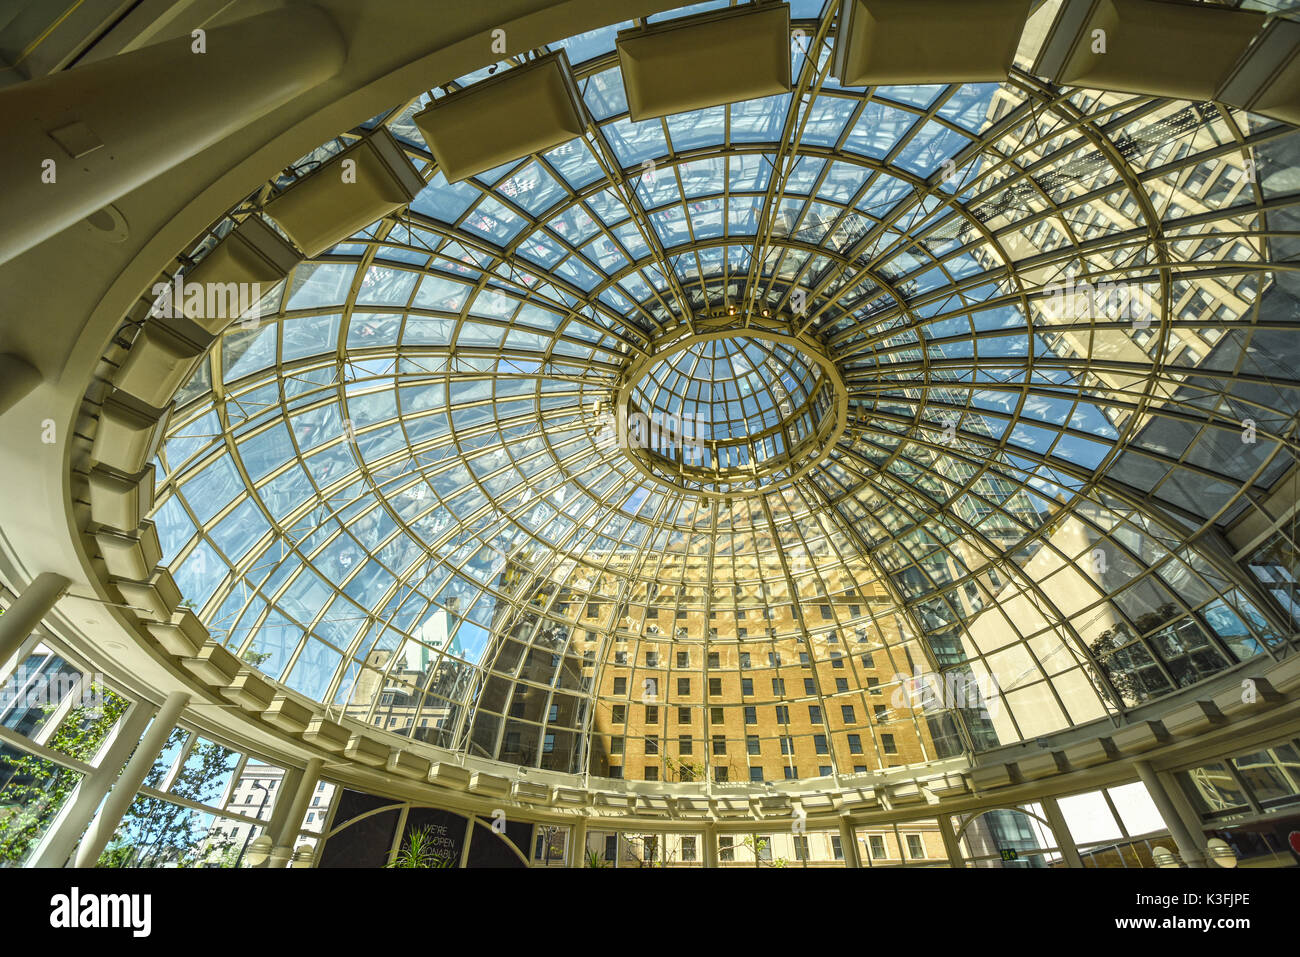 VANCOUVER, CANADA - MAY 25, 2017: The dome-shaped glass rotunda is an entrance into the CF Pacific Centre shopping mall in downtown Vancouver. - Stock Image